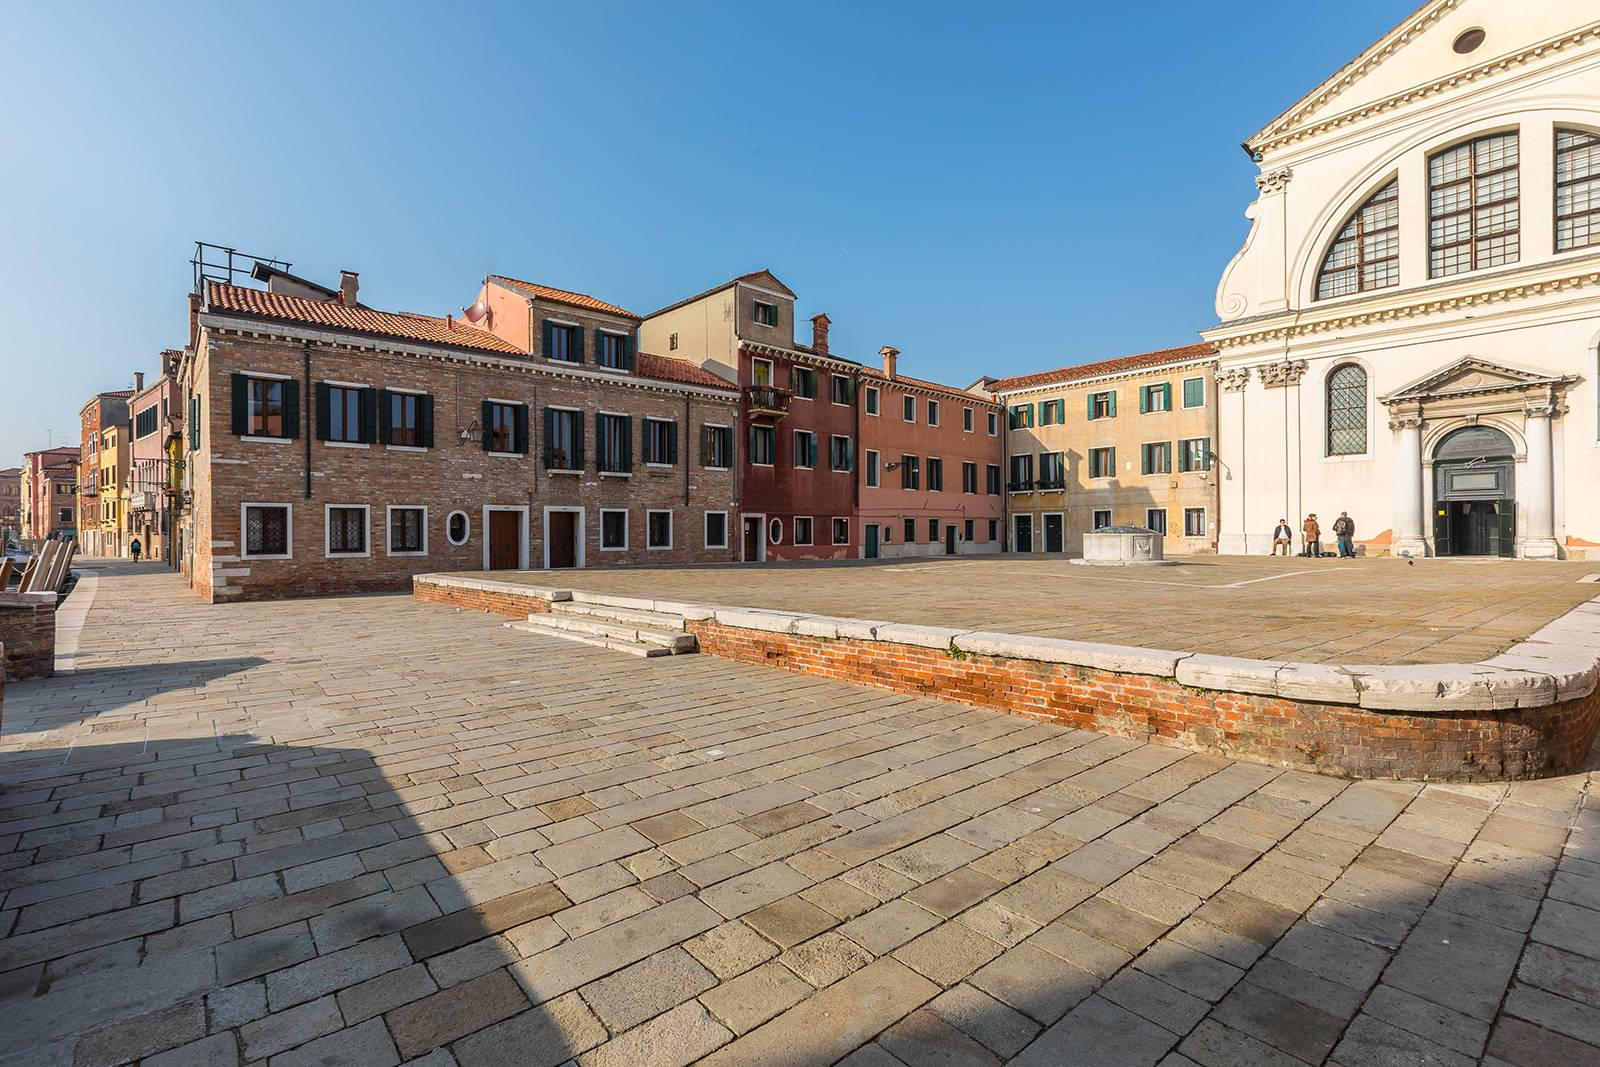 it is strategically located in San Trovaso, with open views over Canal, Square and Church